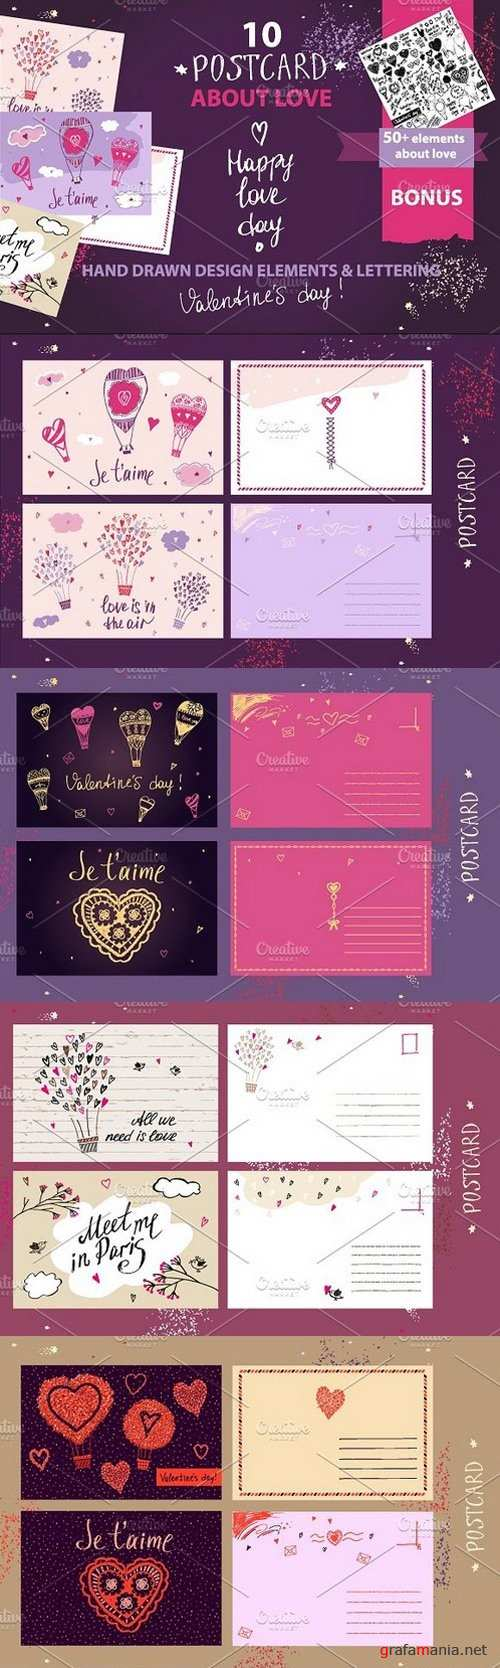 10 postcard about love 1228173